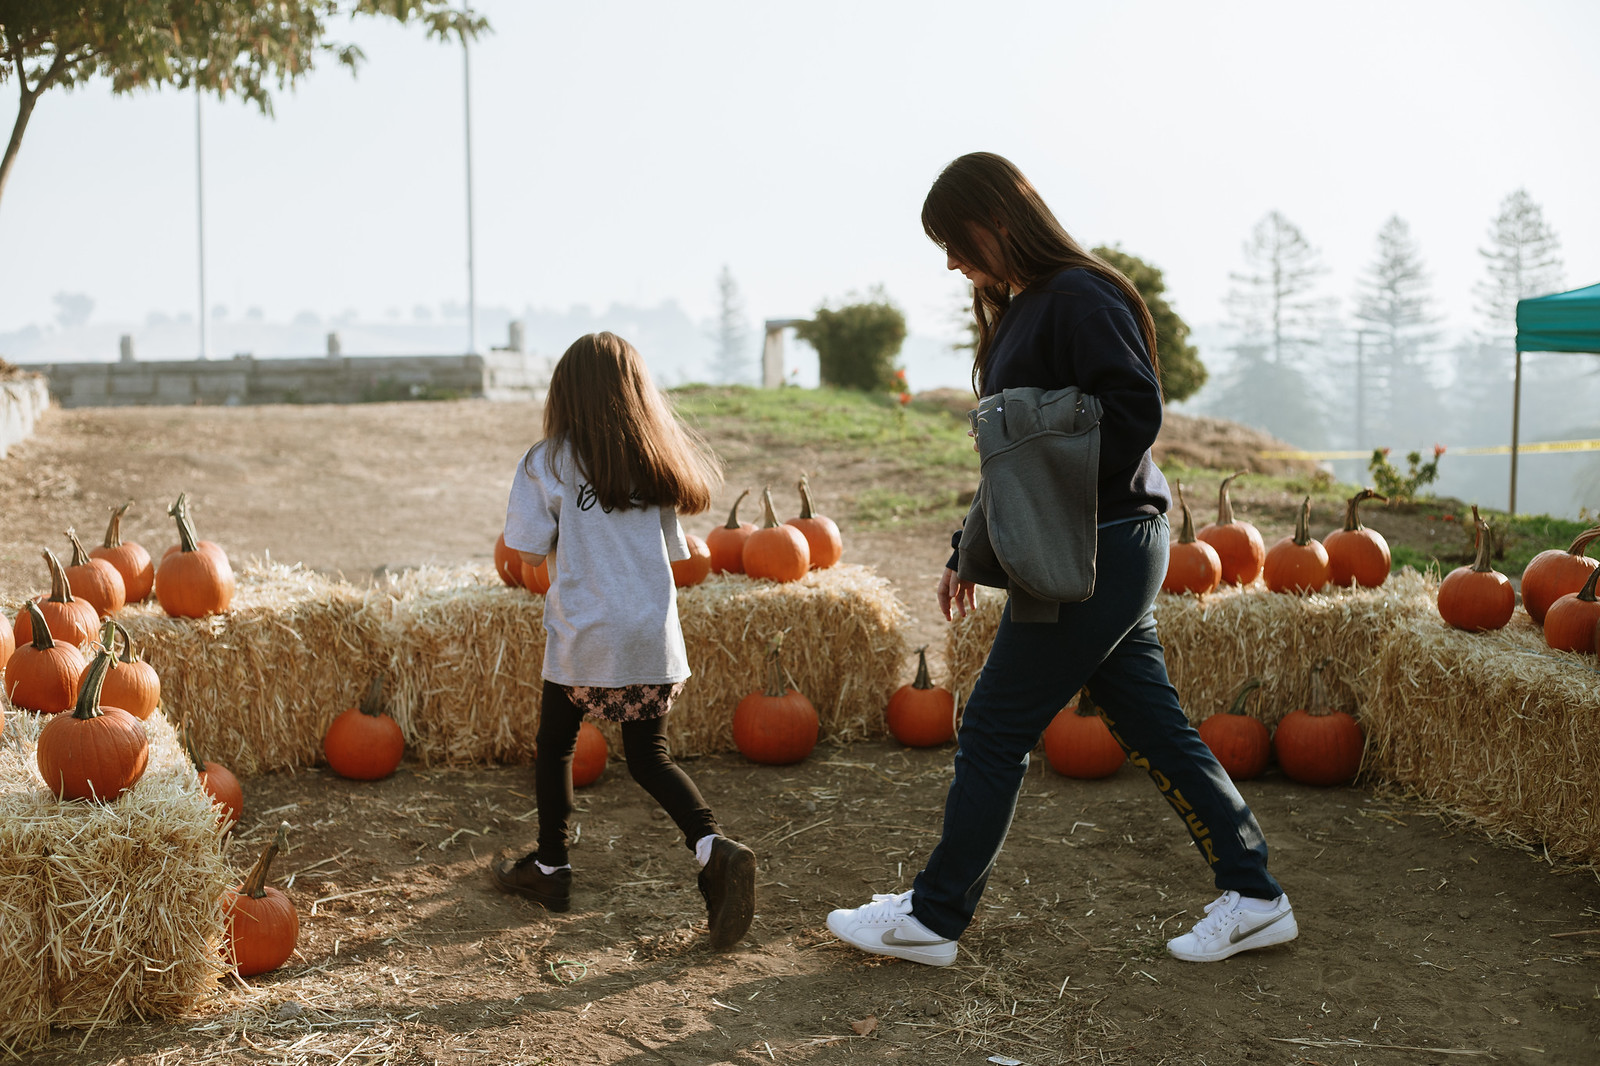 Woman and girl walk in front of pumpkins with prison walls in the background.